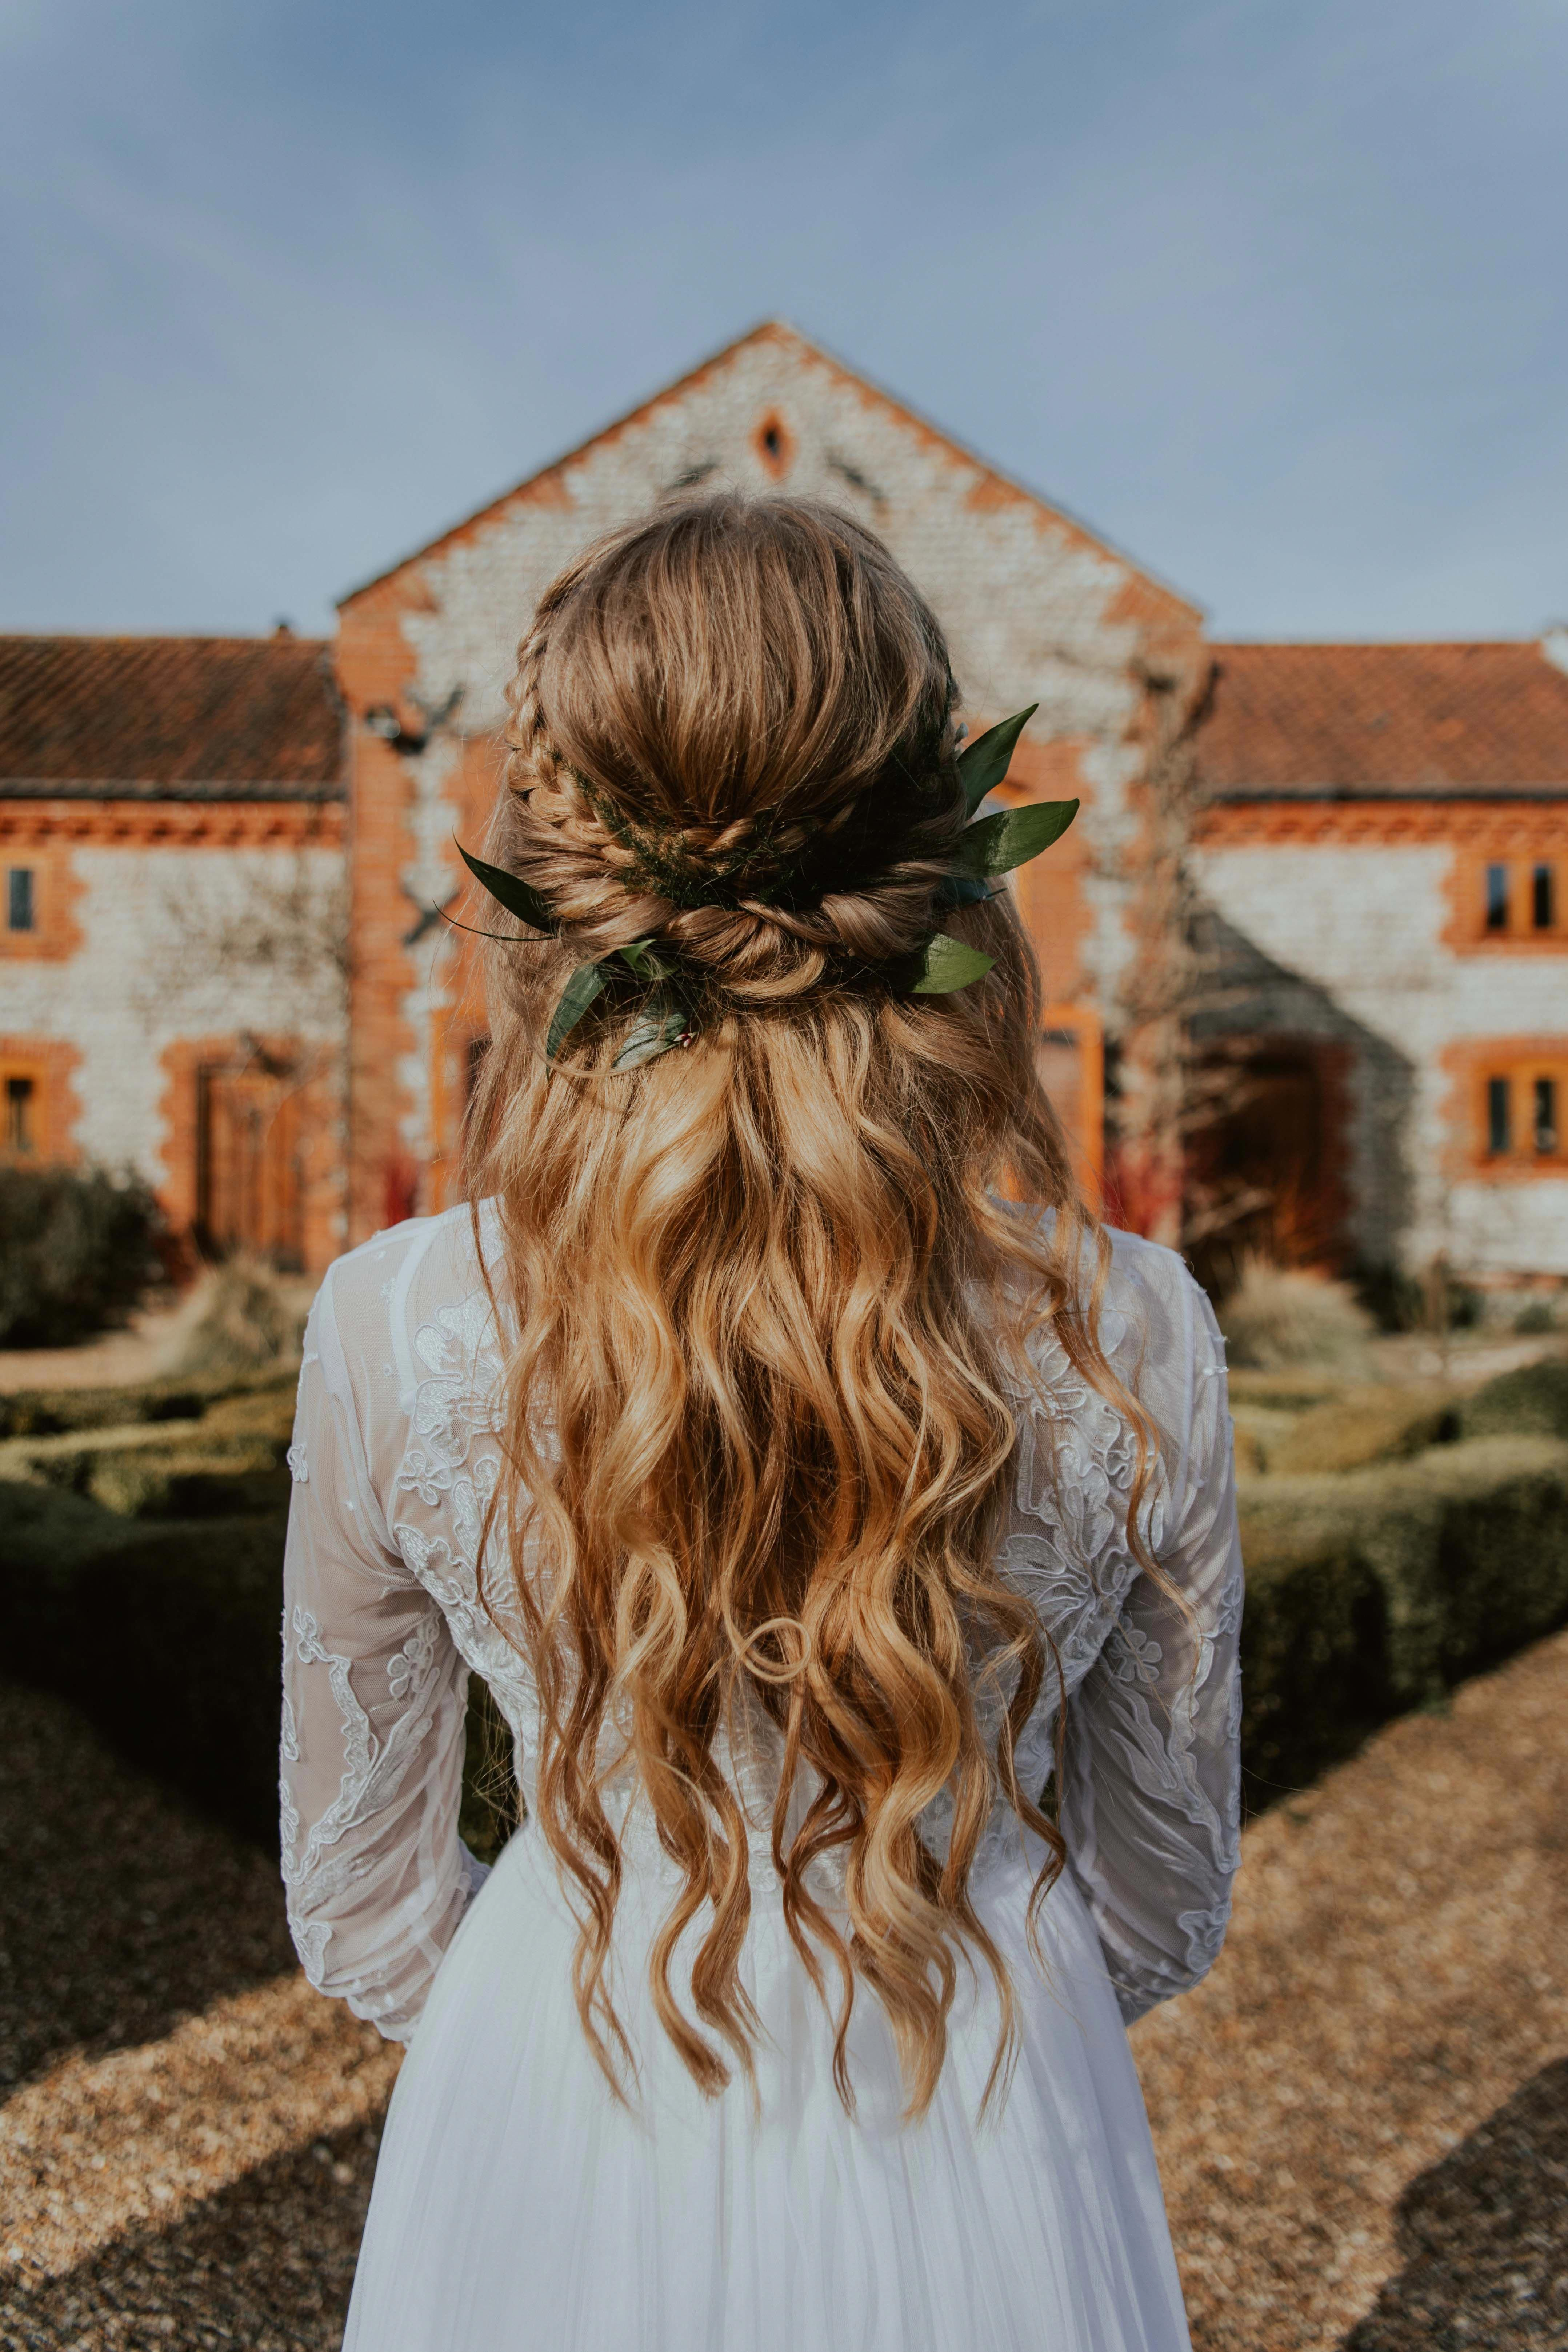 latest wedding hairstyle #weddinghair | hair in 2019 | boho